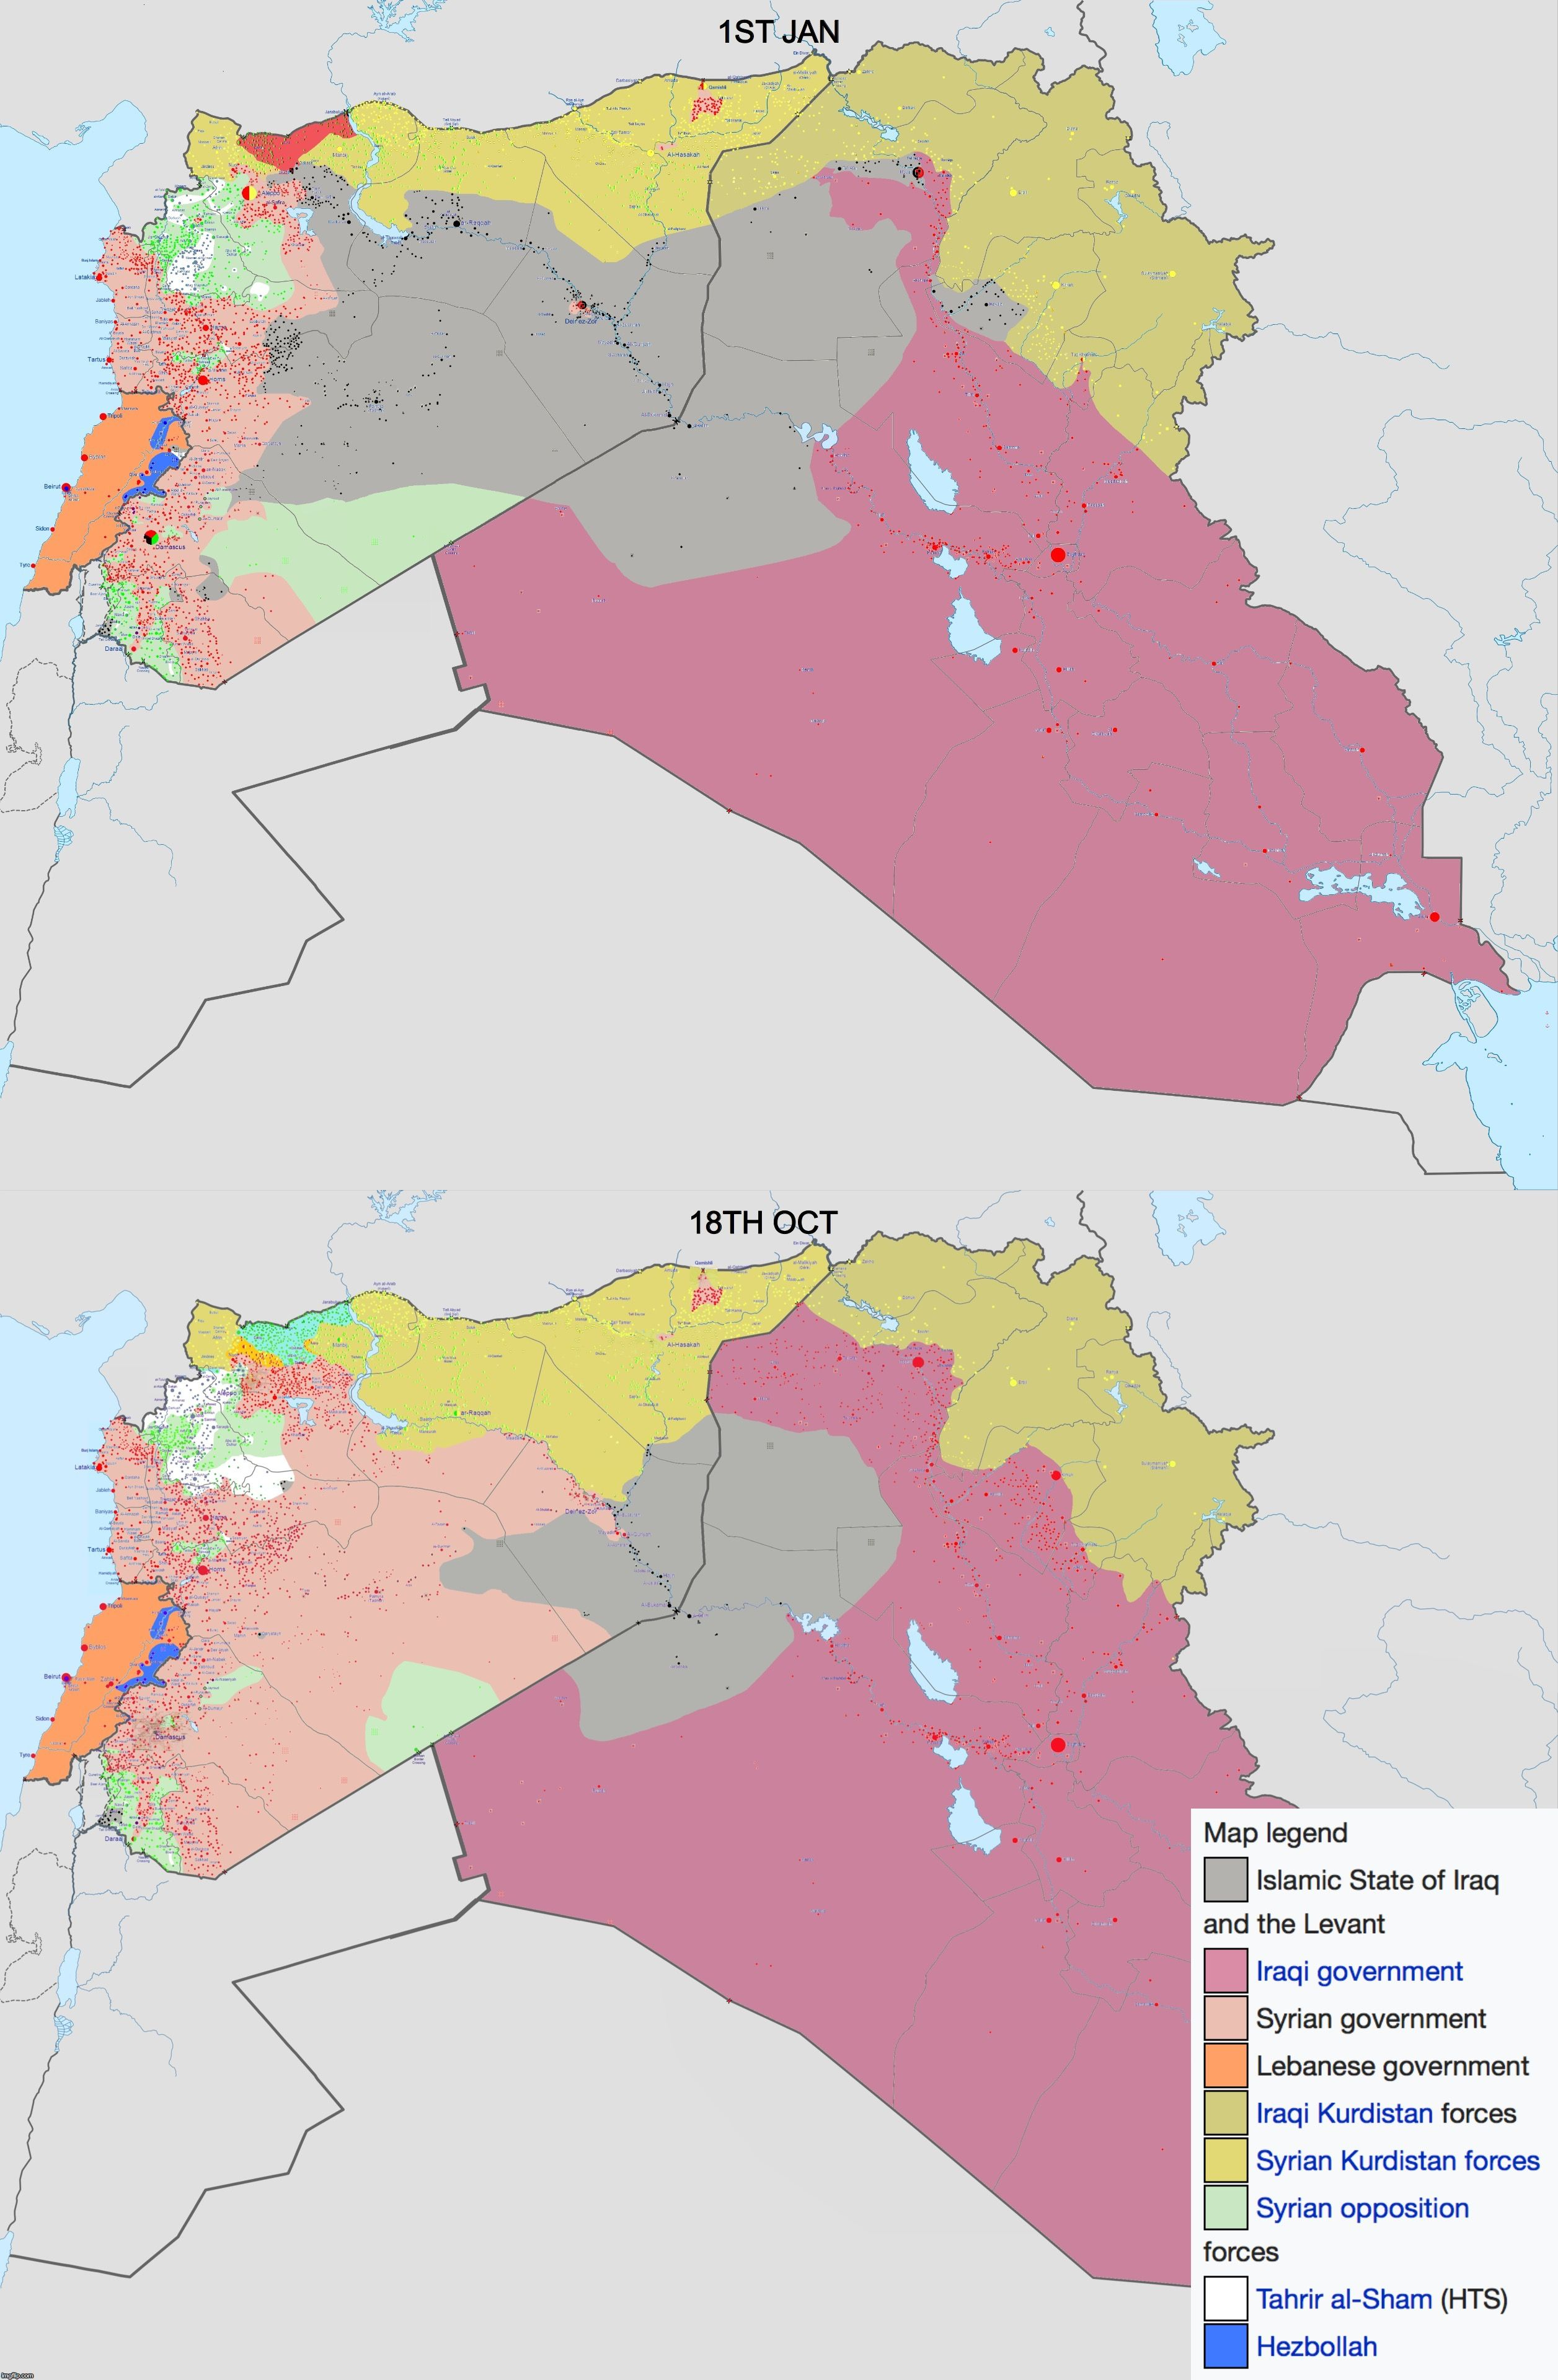 Pin by Martin Keller on History Middle East | Map ...